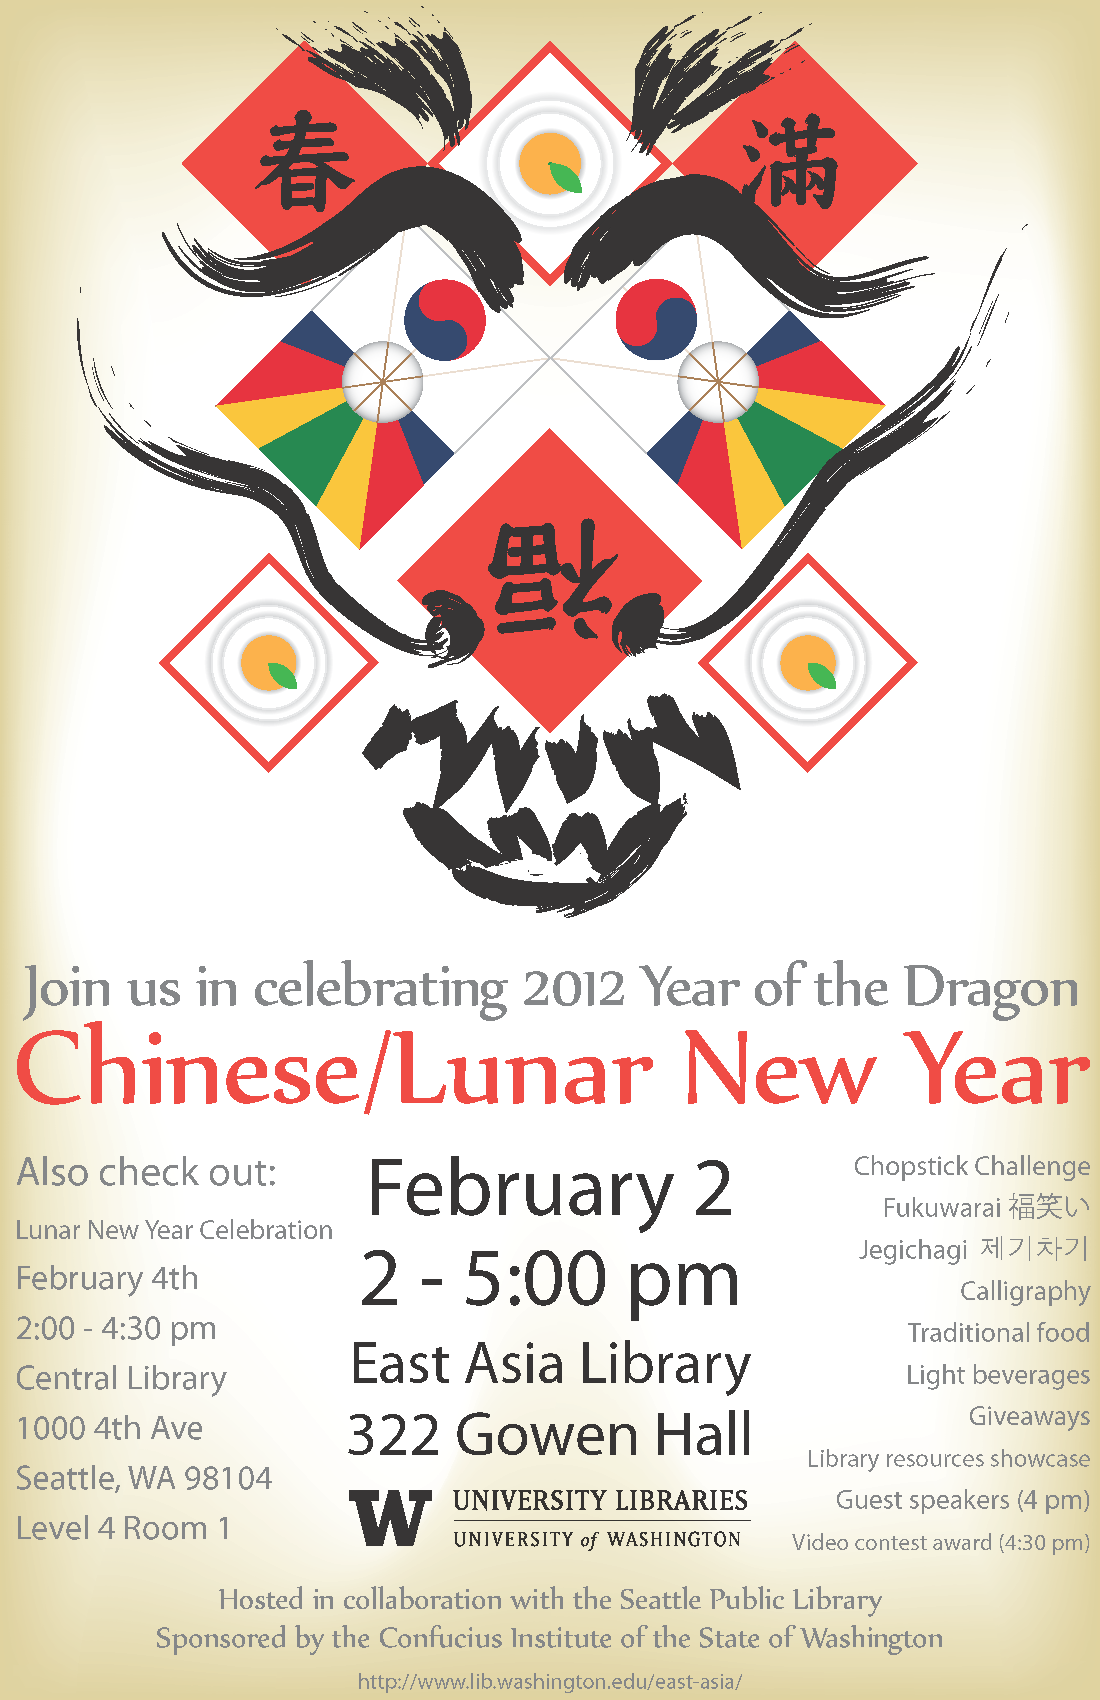 2012 Chinese/Lunar New Year poster